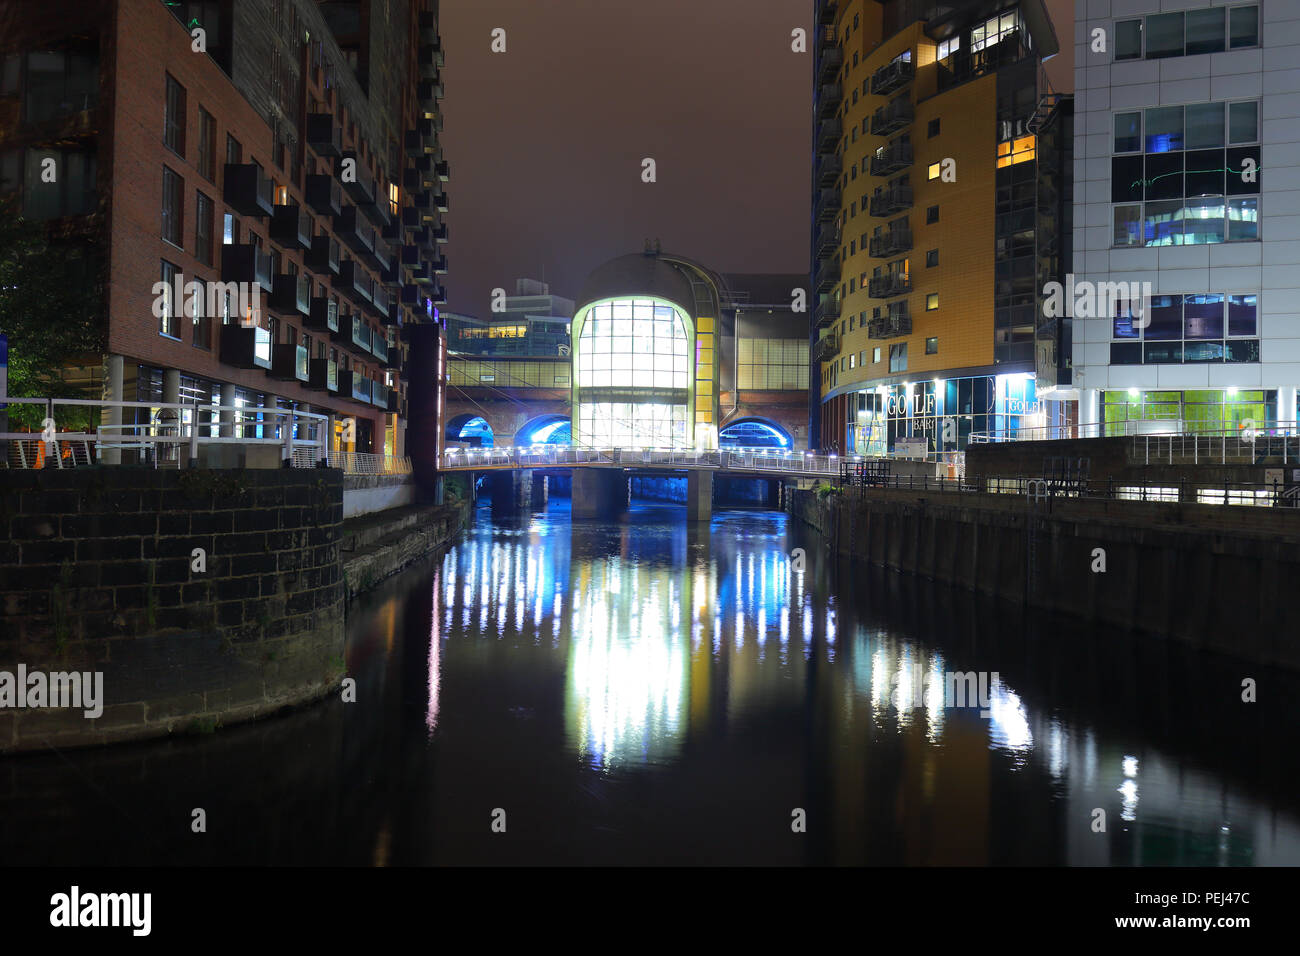 The newly built South Entrance to Leeds Station at night. Stock Photo